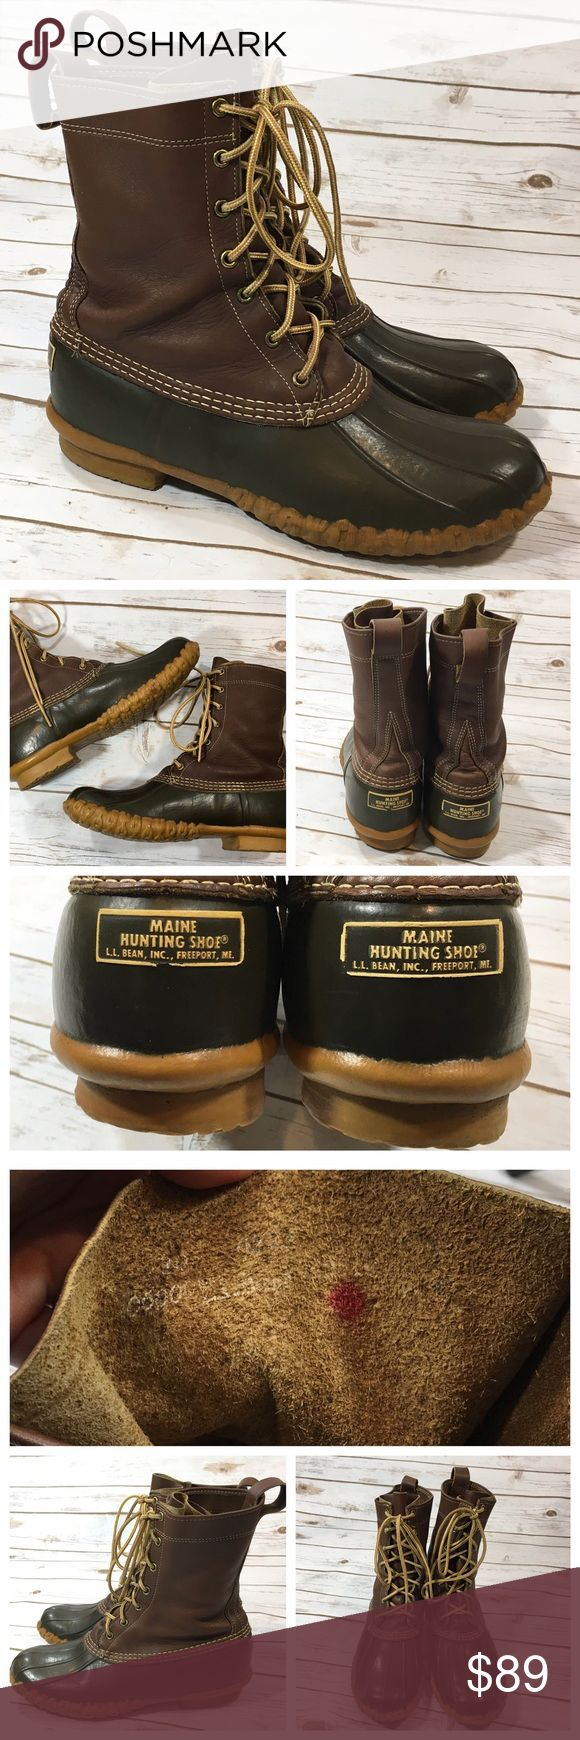 """LL Bean Men's Maine Hunting Shoe Boots L.L. Bean Maine Hunting Shoe. Brown leather and dark green rubber boots. Lace up closure. Rubber sole.  Labeled size 10 men's.  Boot shaft measures 8.5"""" tall.  Very good condition. They have a red dot inside of each boot. Boots are in great shape, bottom soles show hardly any wear. They each have silver writing on the bottom sole as shown. Uppers have no major flaws to note. I recently applied a fresh coat of leather conditioner, they'll come to you…"""